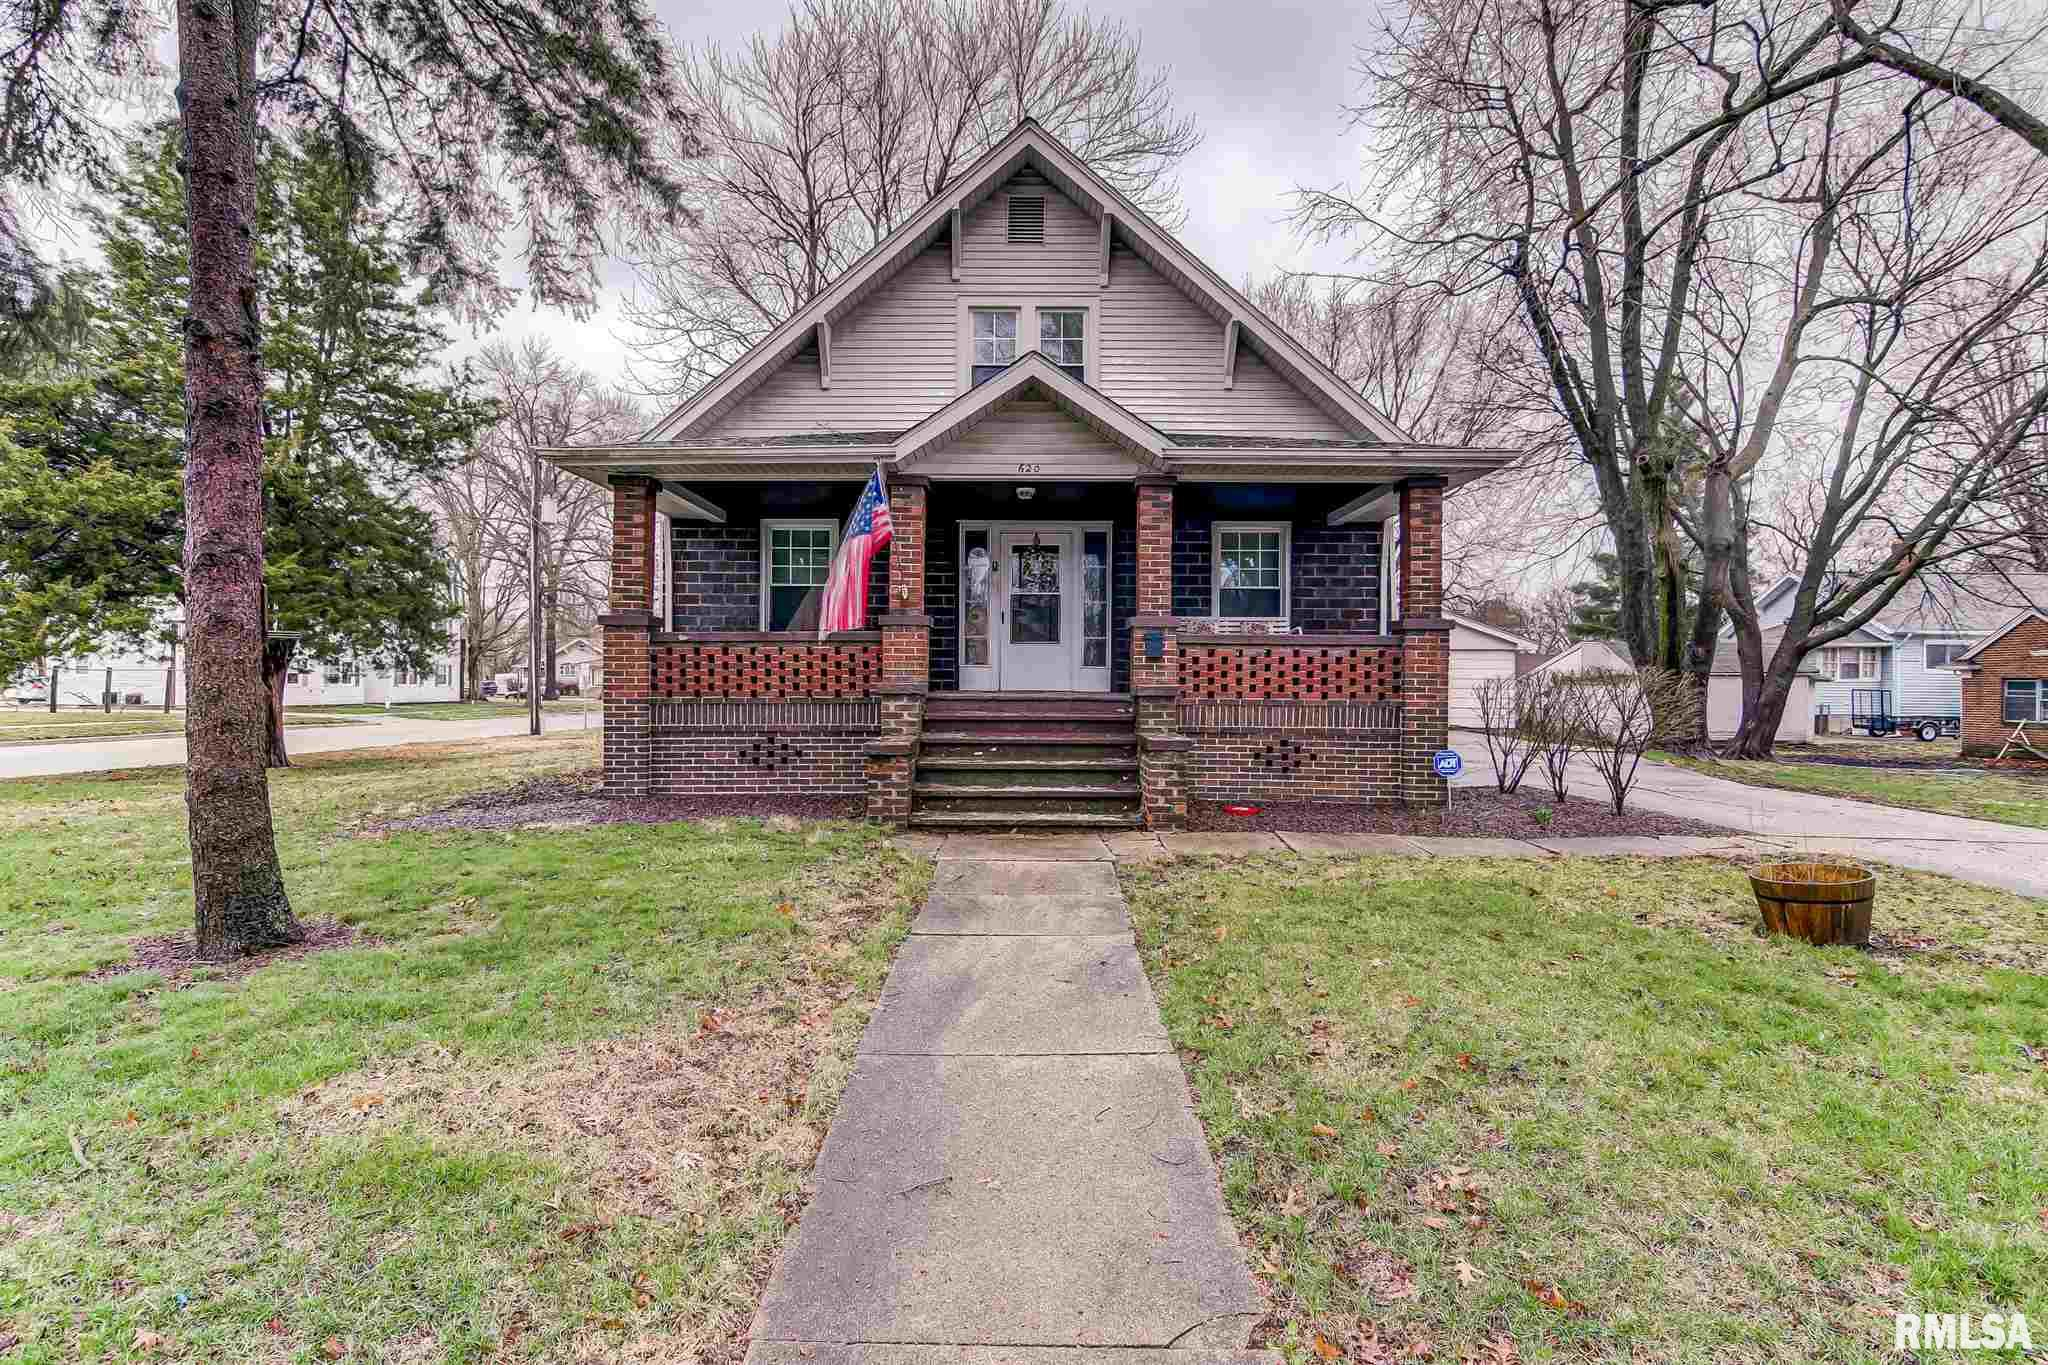 620 W JEFFERSON Property Photo - Auburn, IL real estate listing